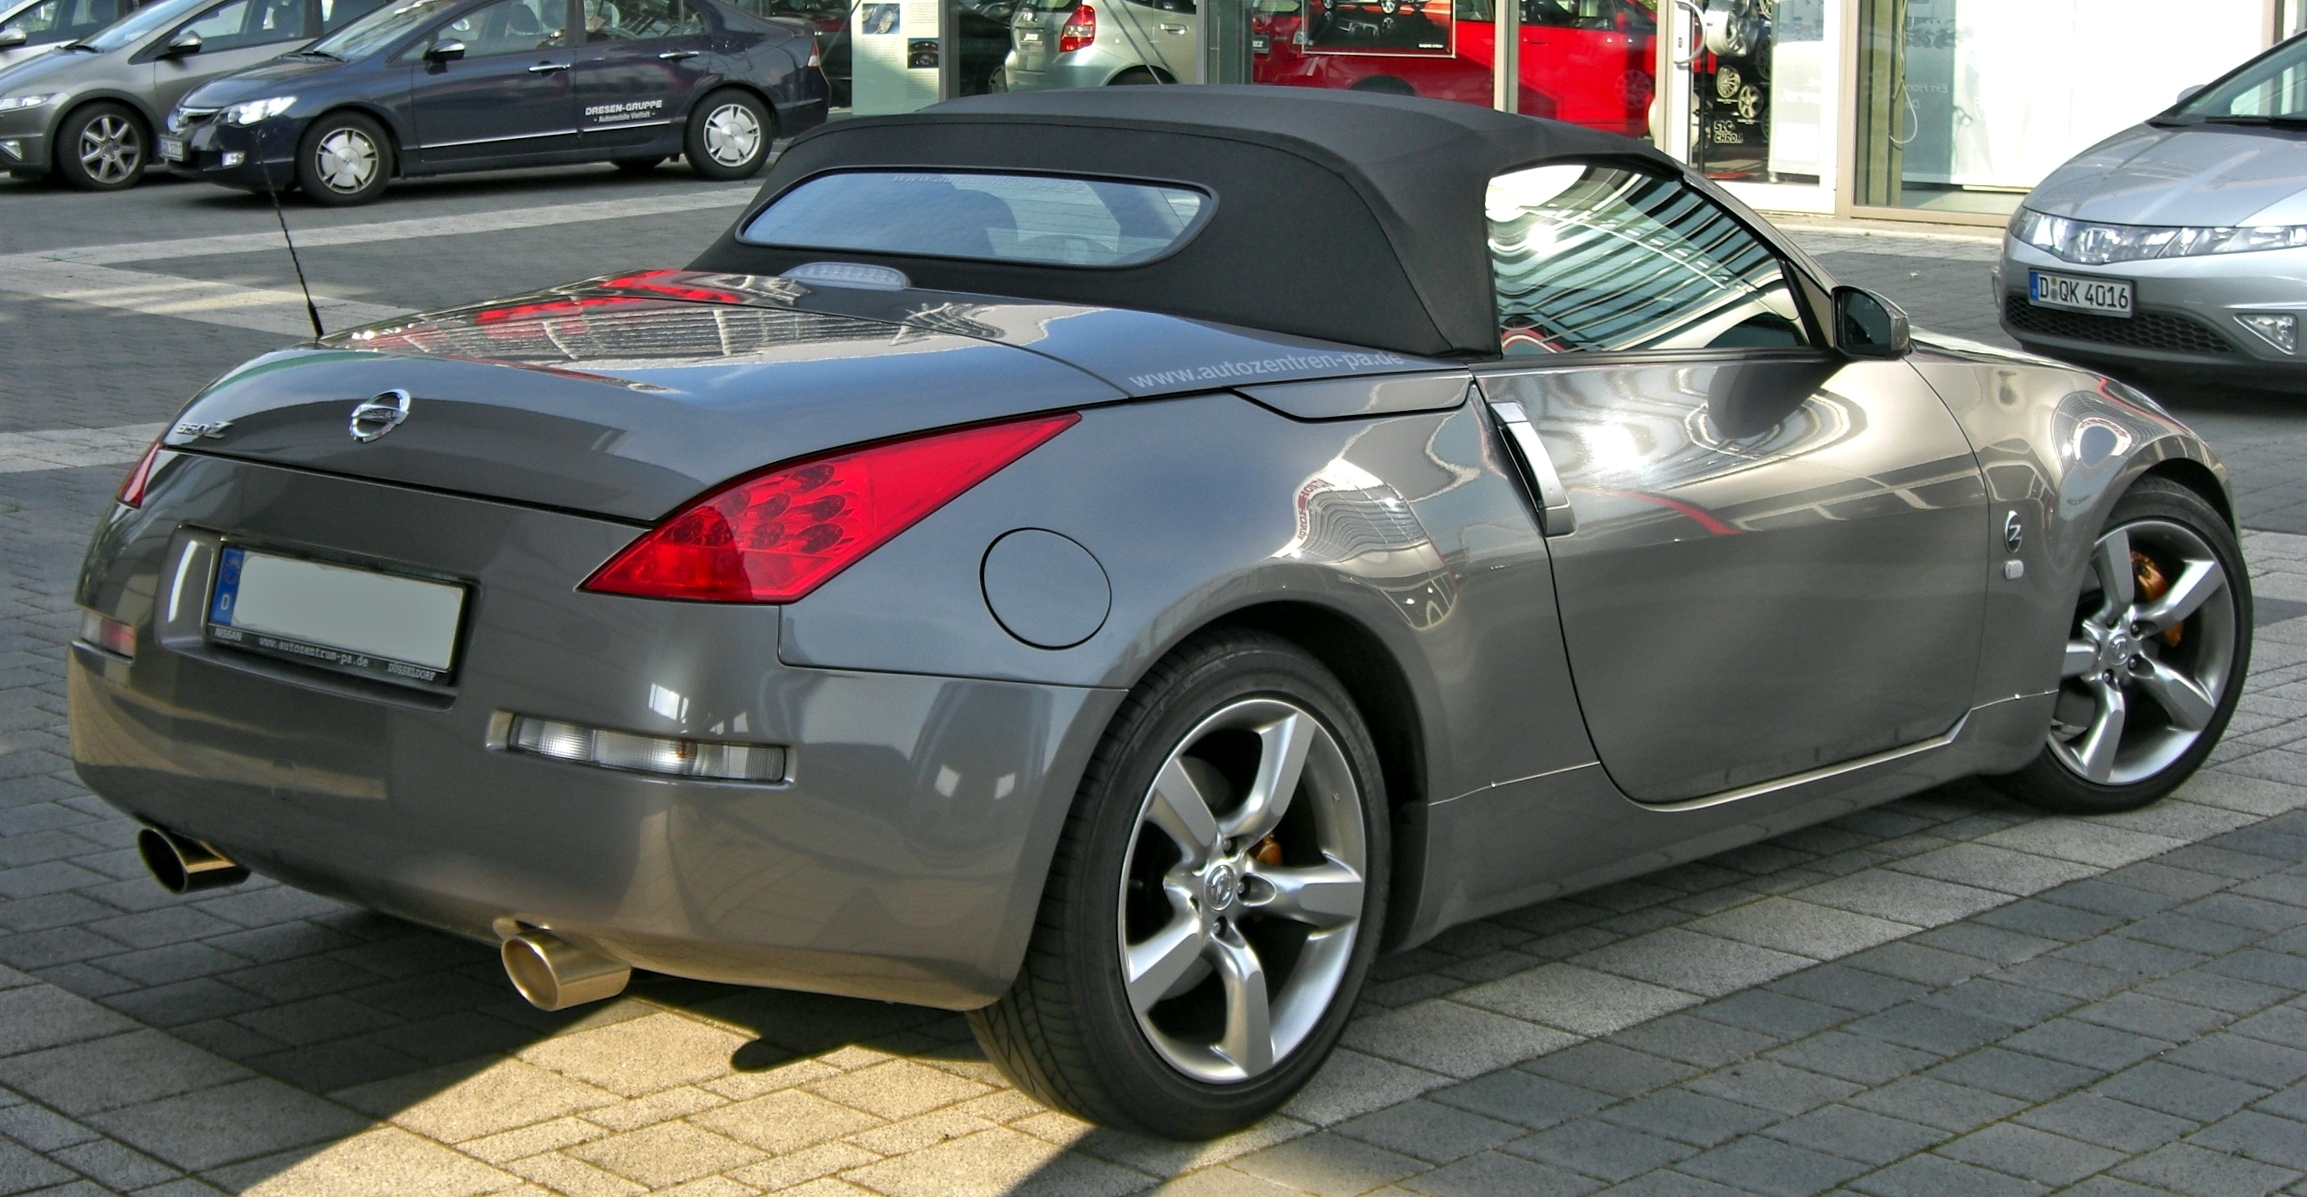 NISSAN 350Z Roadster technical details, history, photos on ...